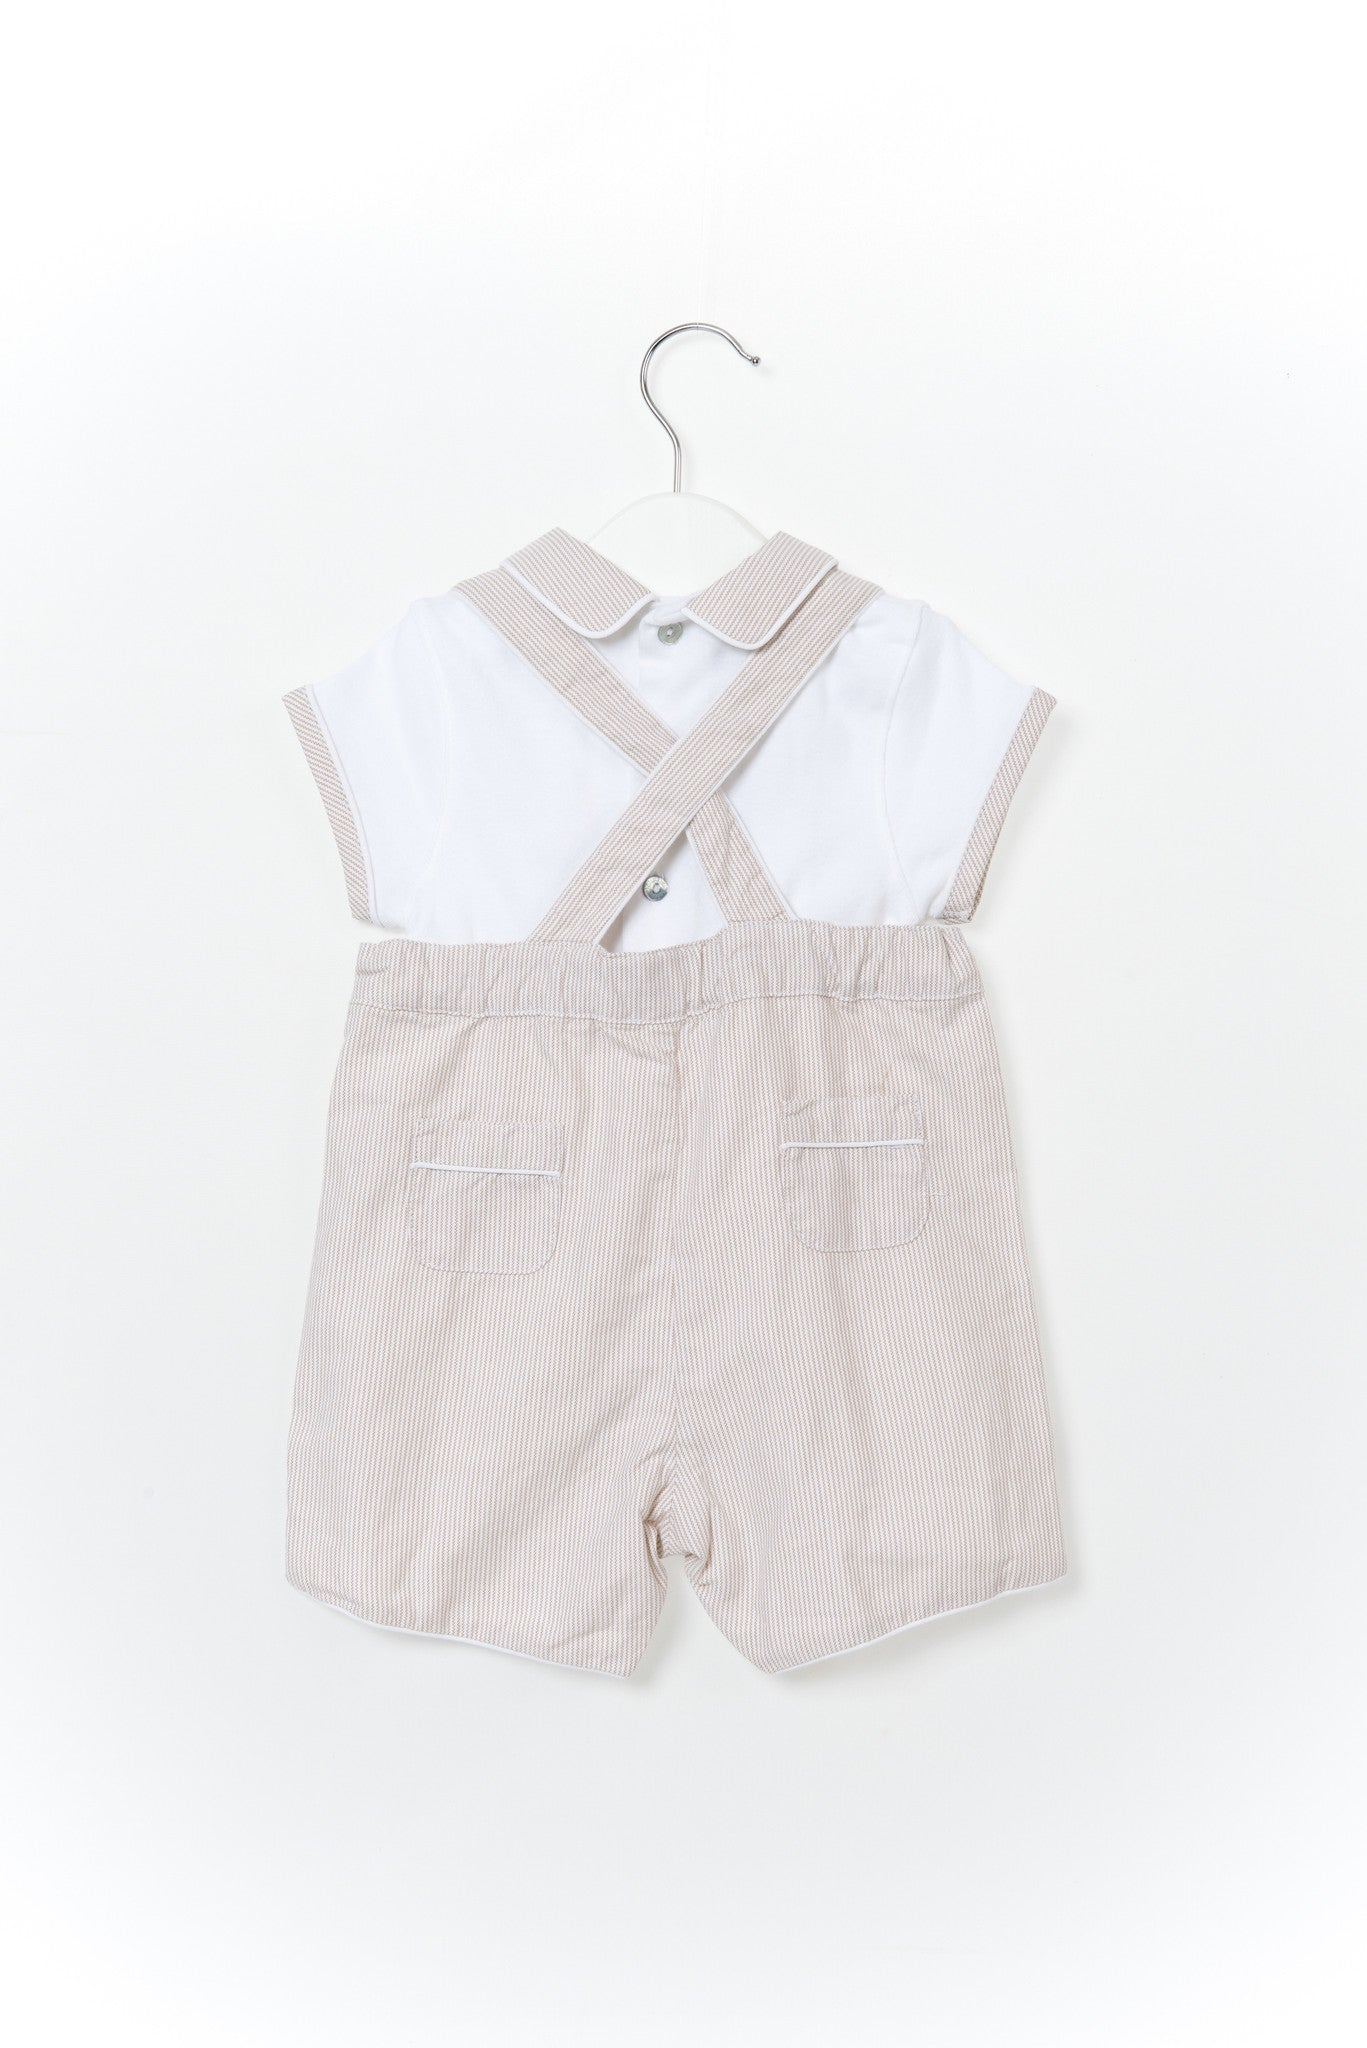 Chateau de Sable at Retykle | Online Shopping Discount Baby & Kids Clothes Hong Kong